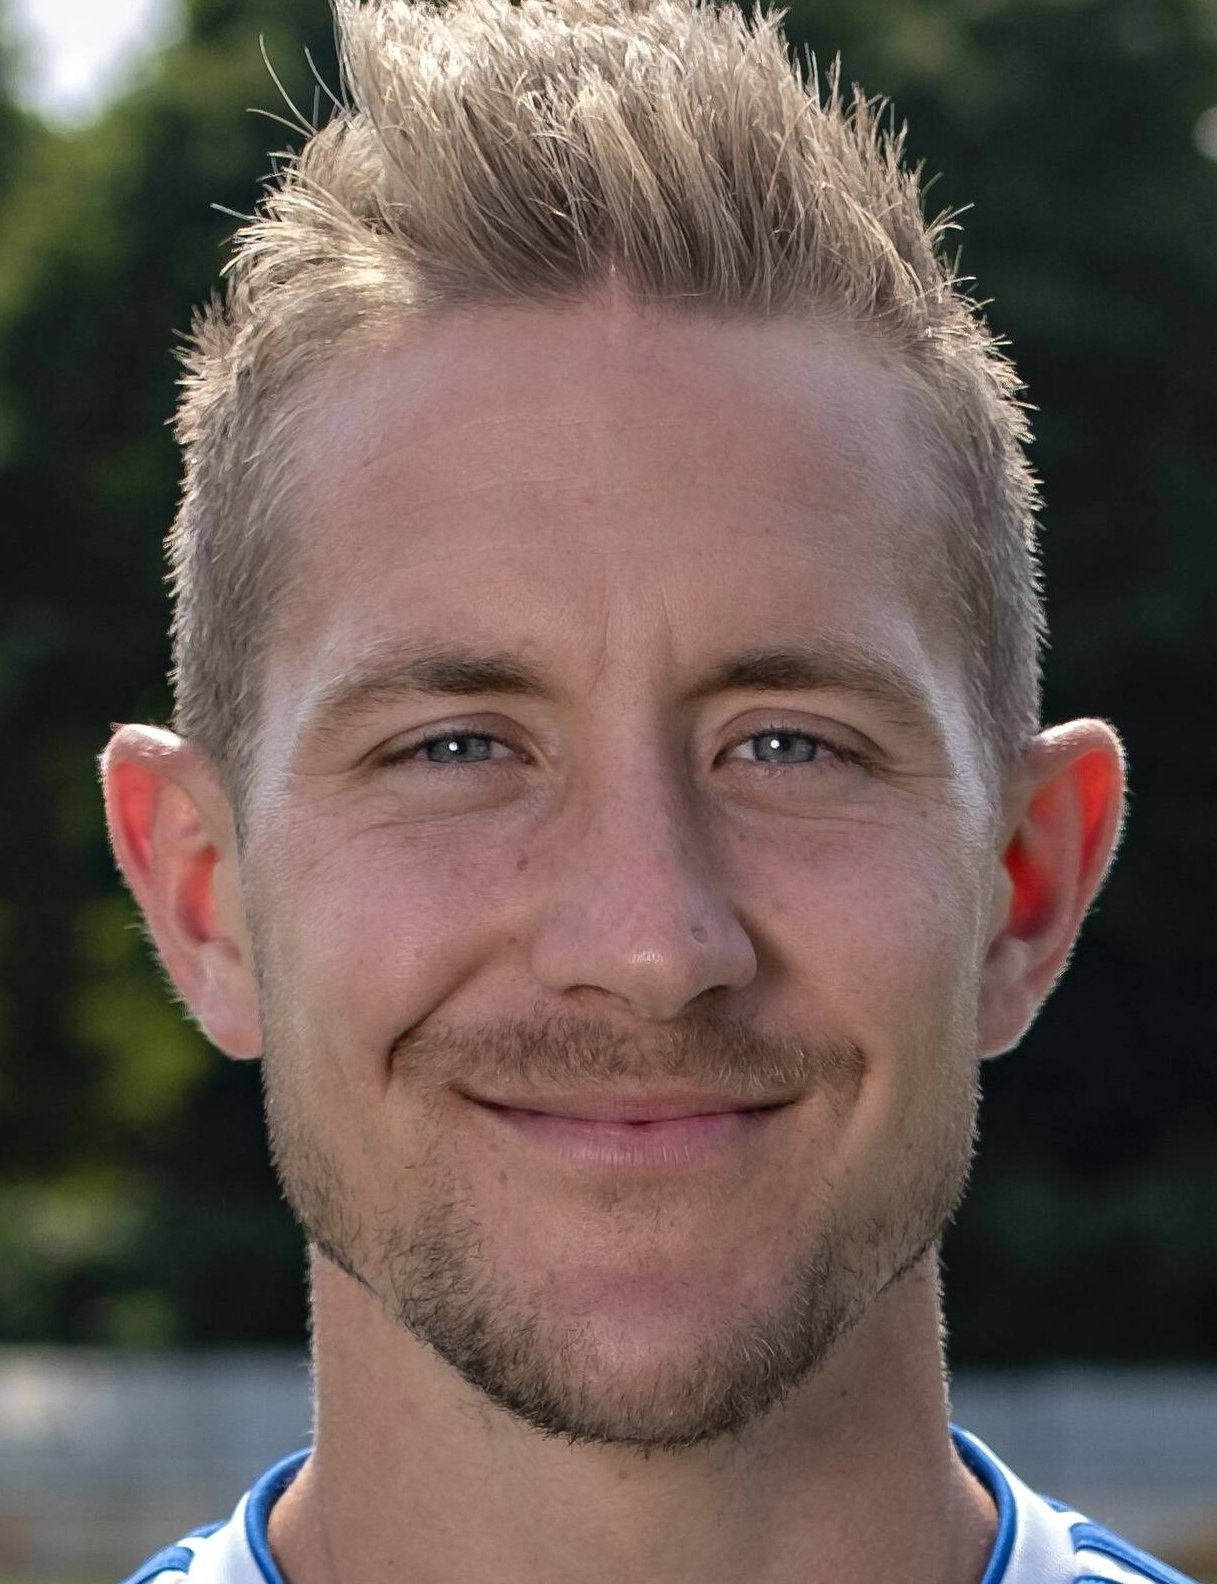 Lewis Holtby Player Profile 20 21 Transfermarkt